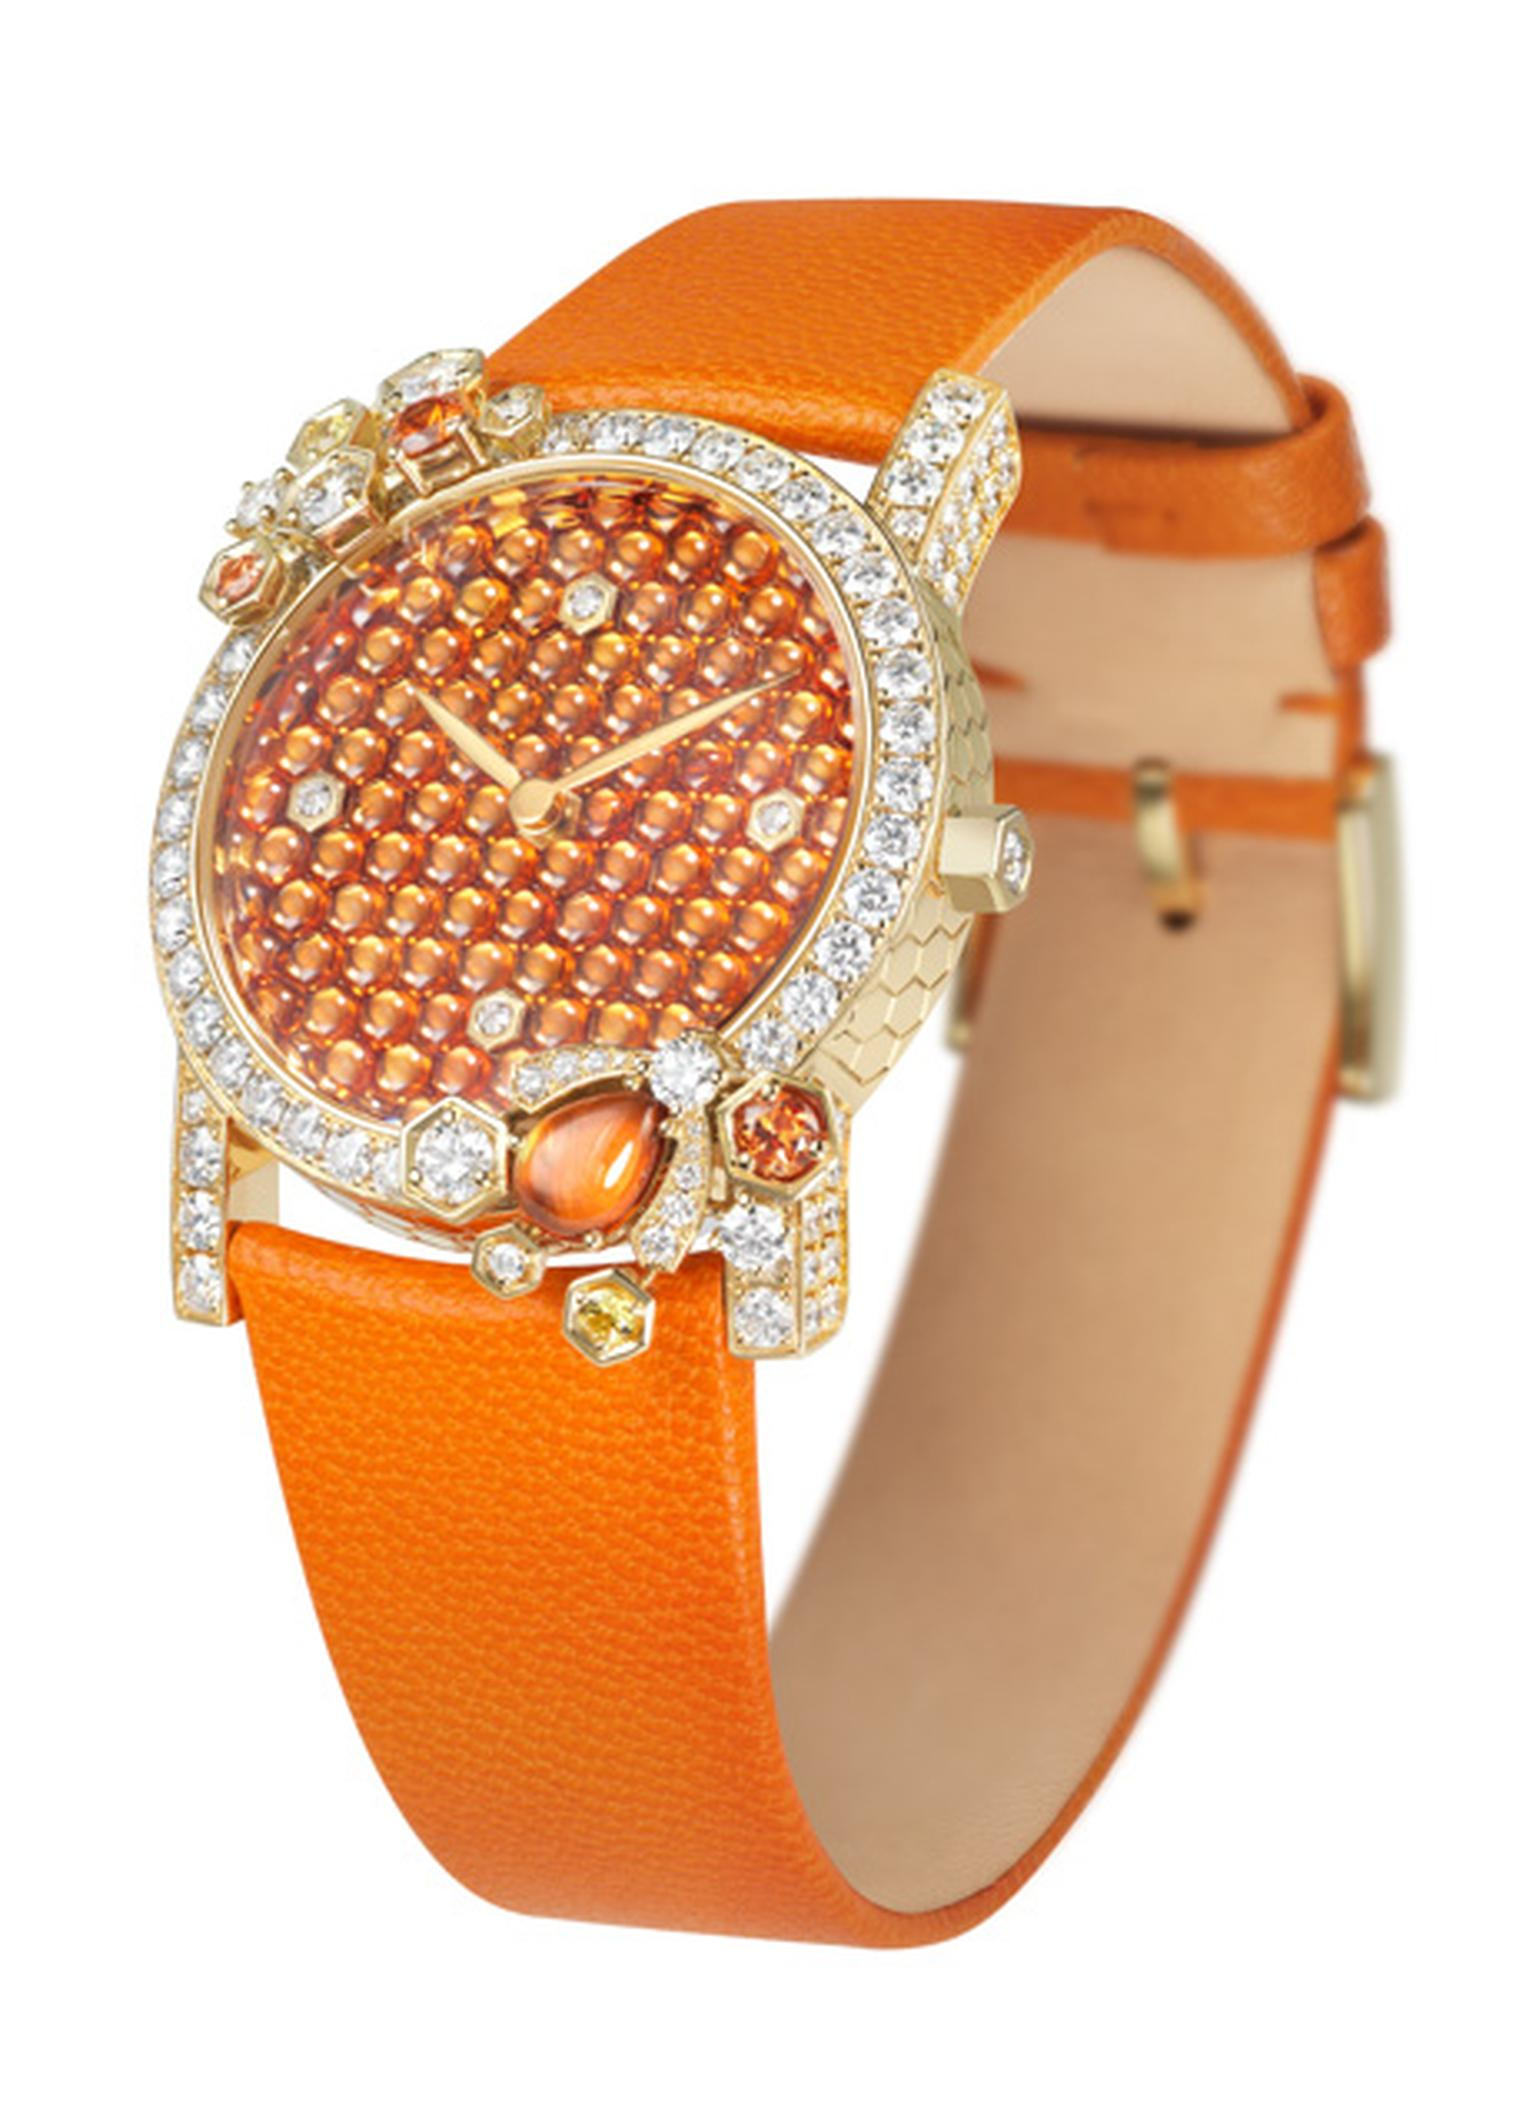 Chaumet-AtrappeMoiCabochonWatch.jpg